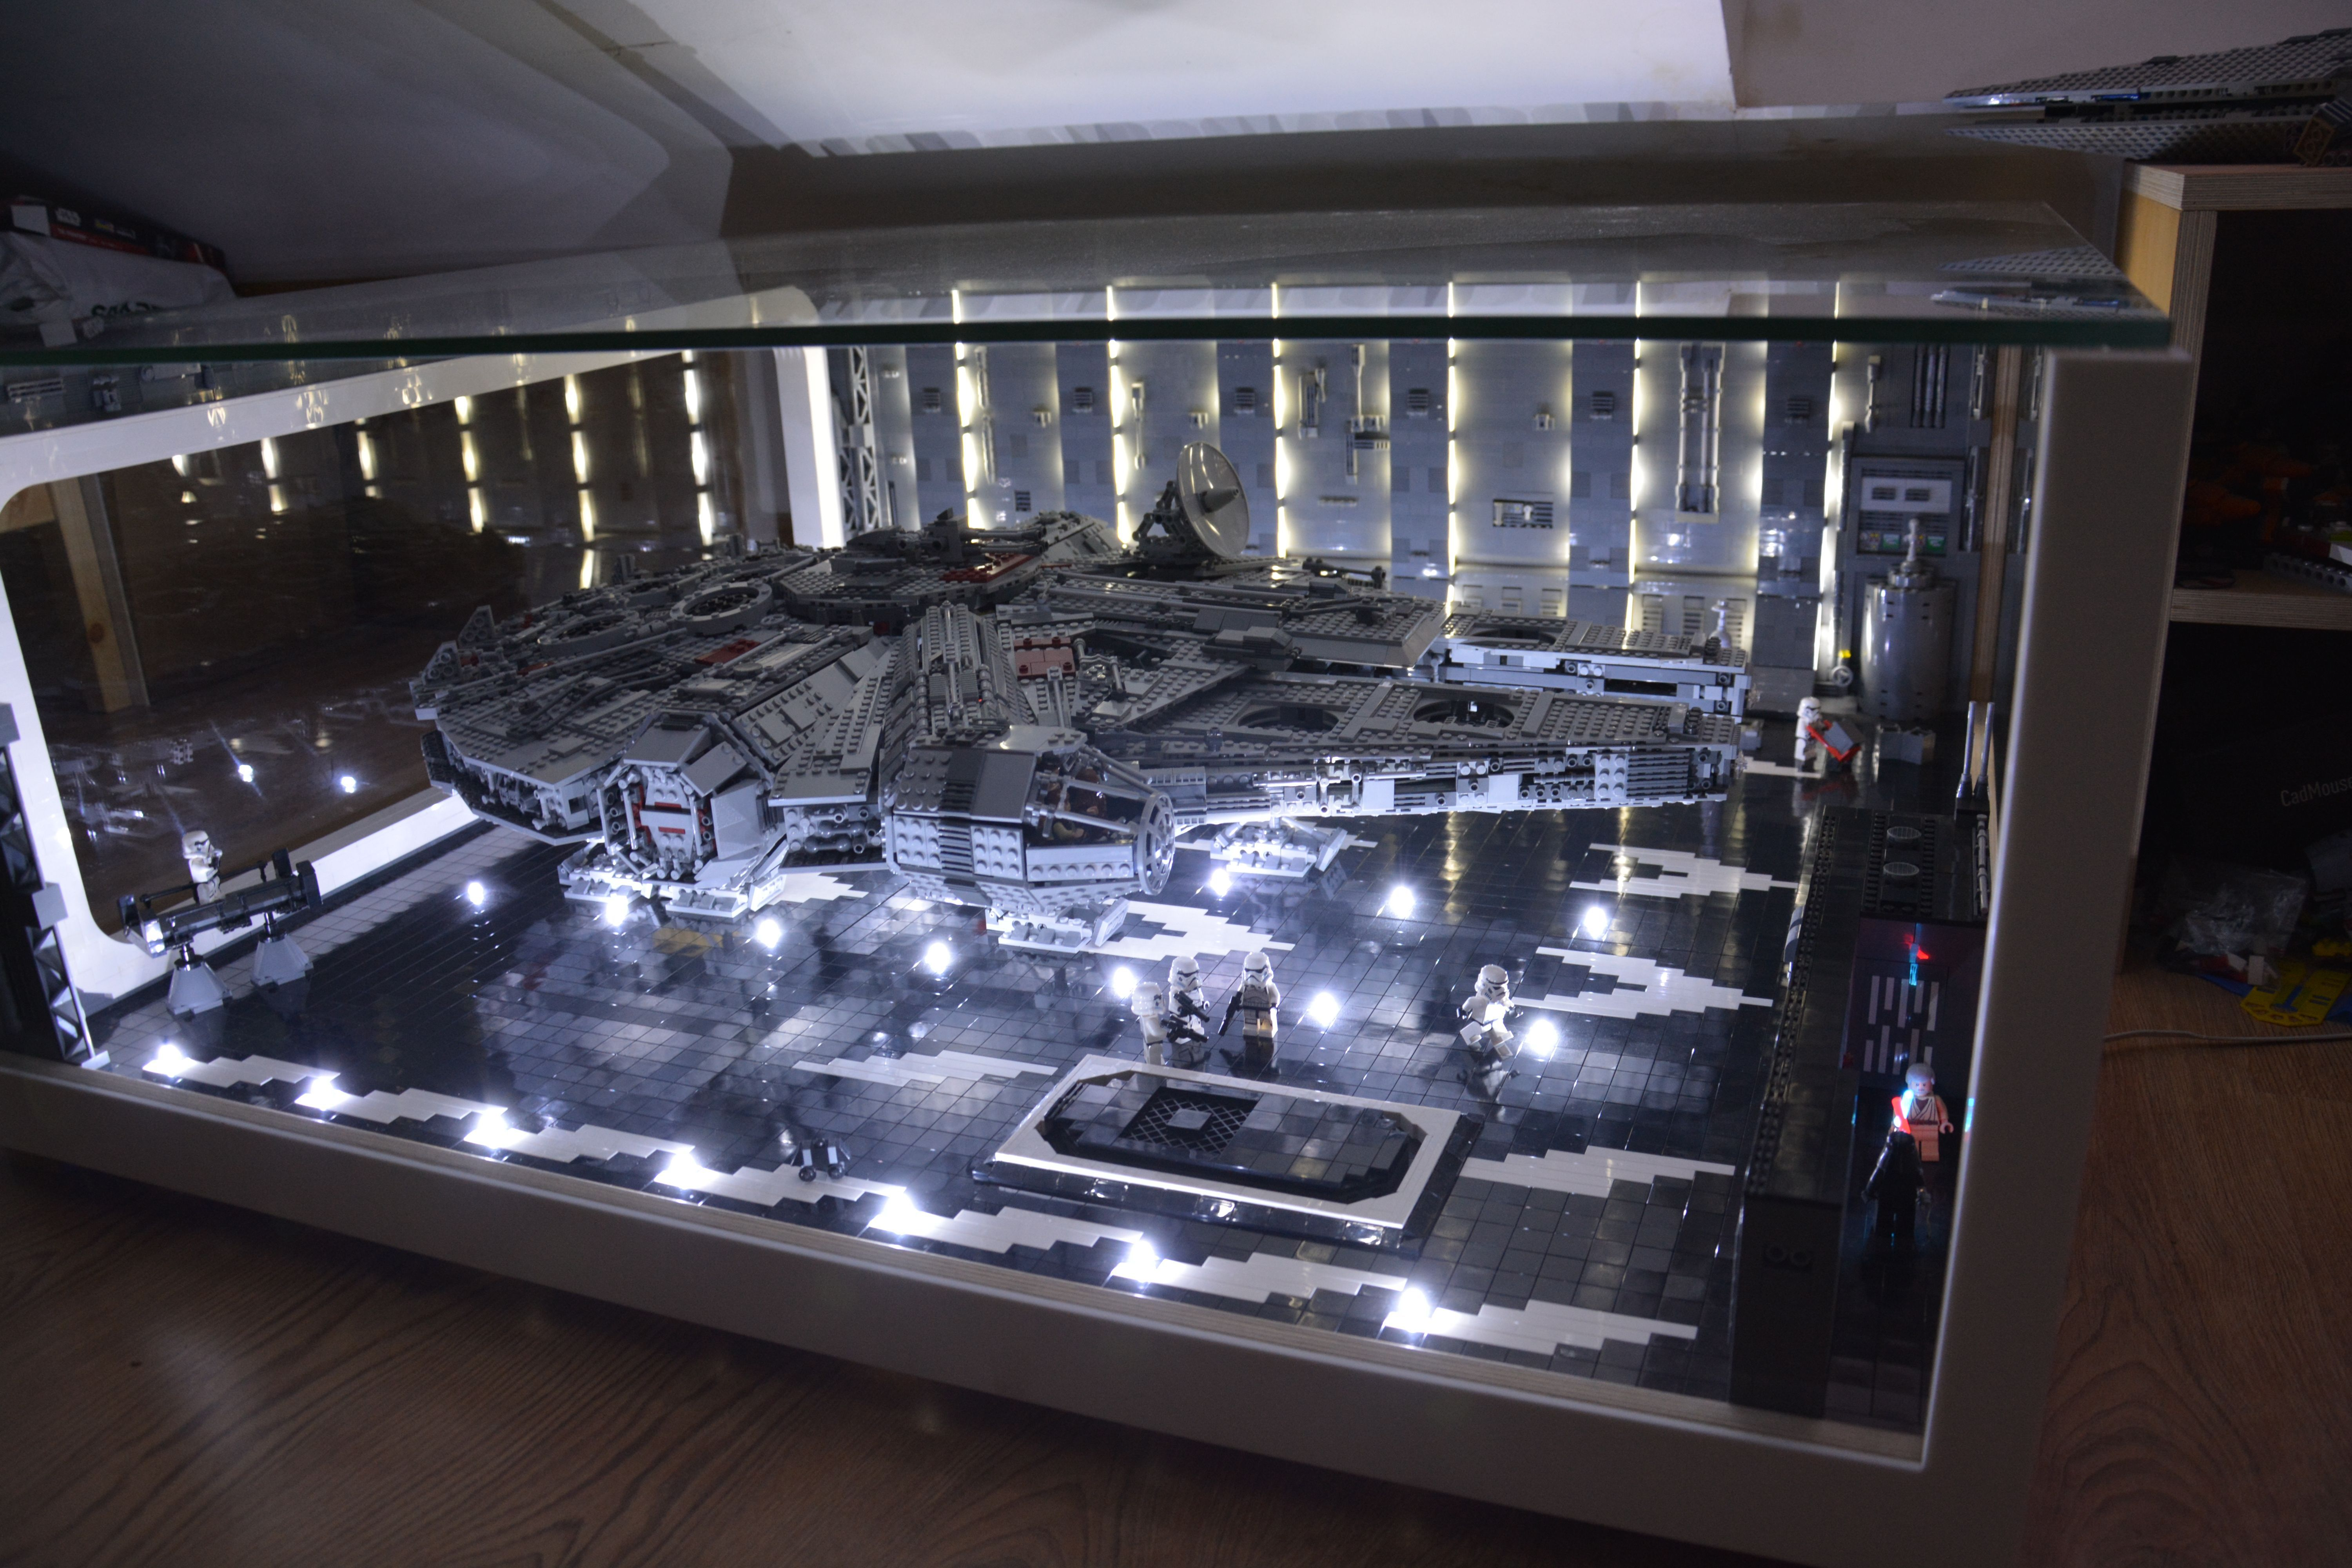 Pin By Chase Hervey On Star Wars Diorama In 2020 Star Wars Room Lego Display Star Wars Decor